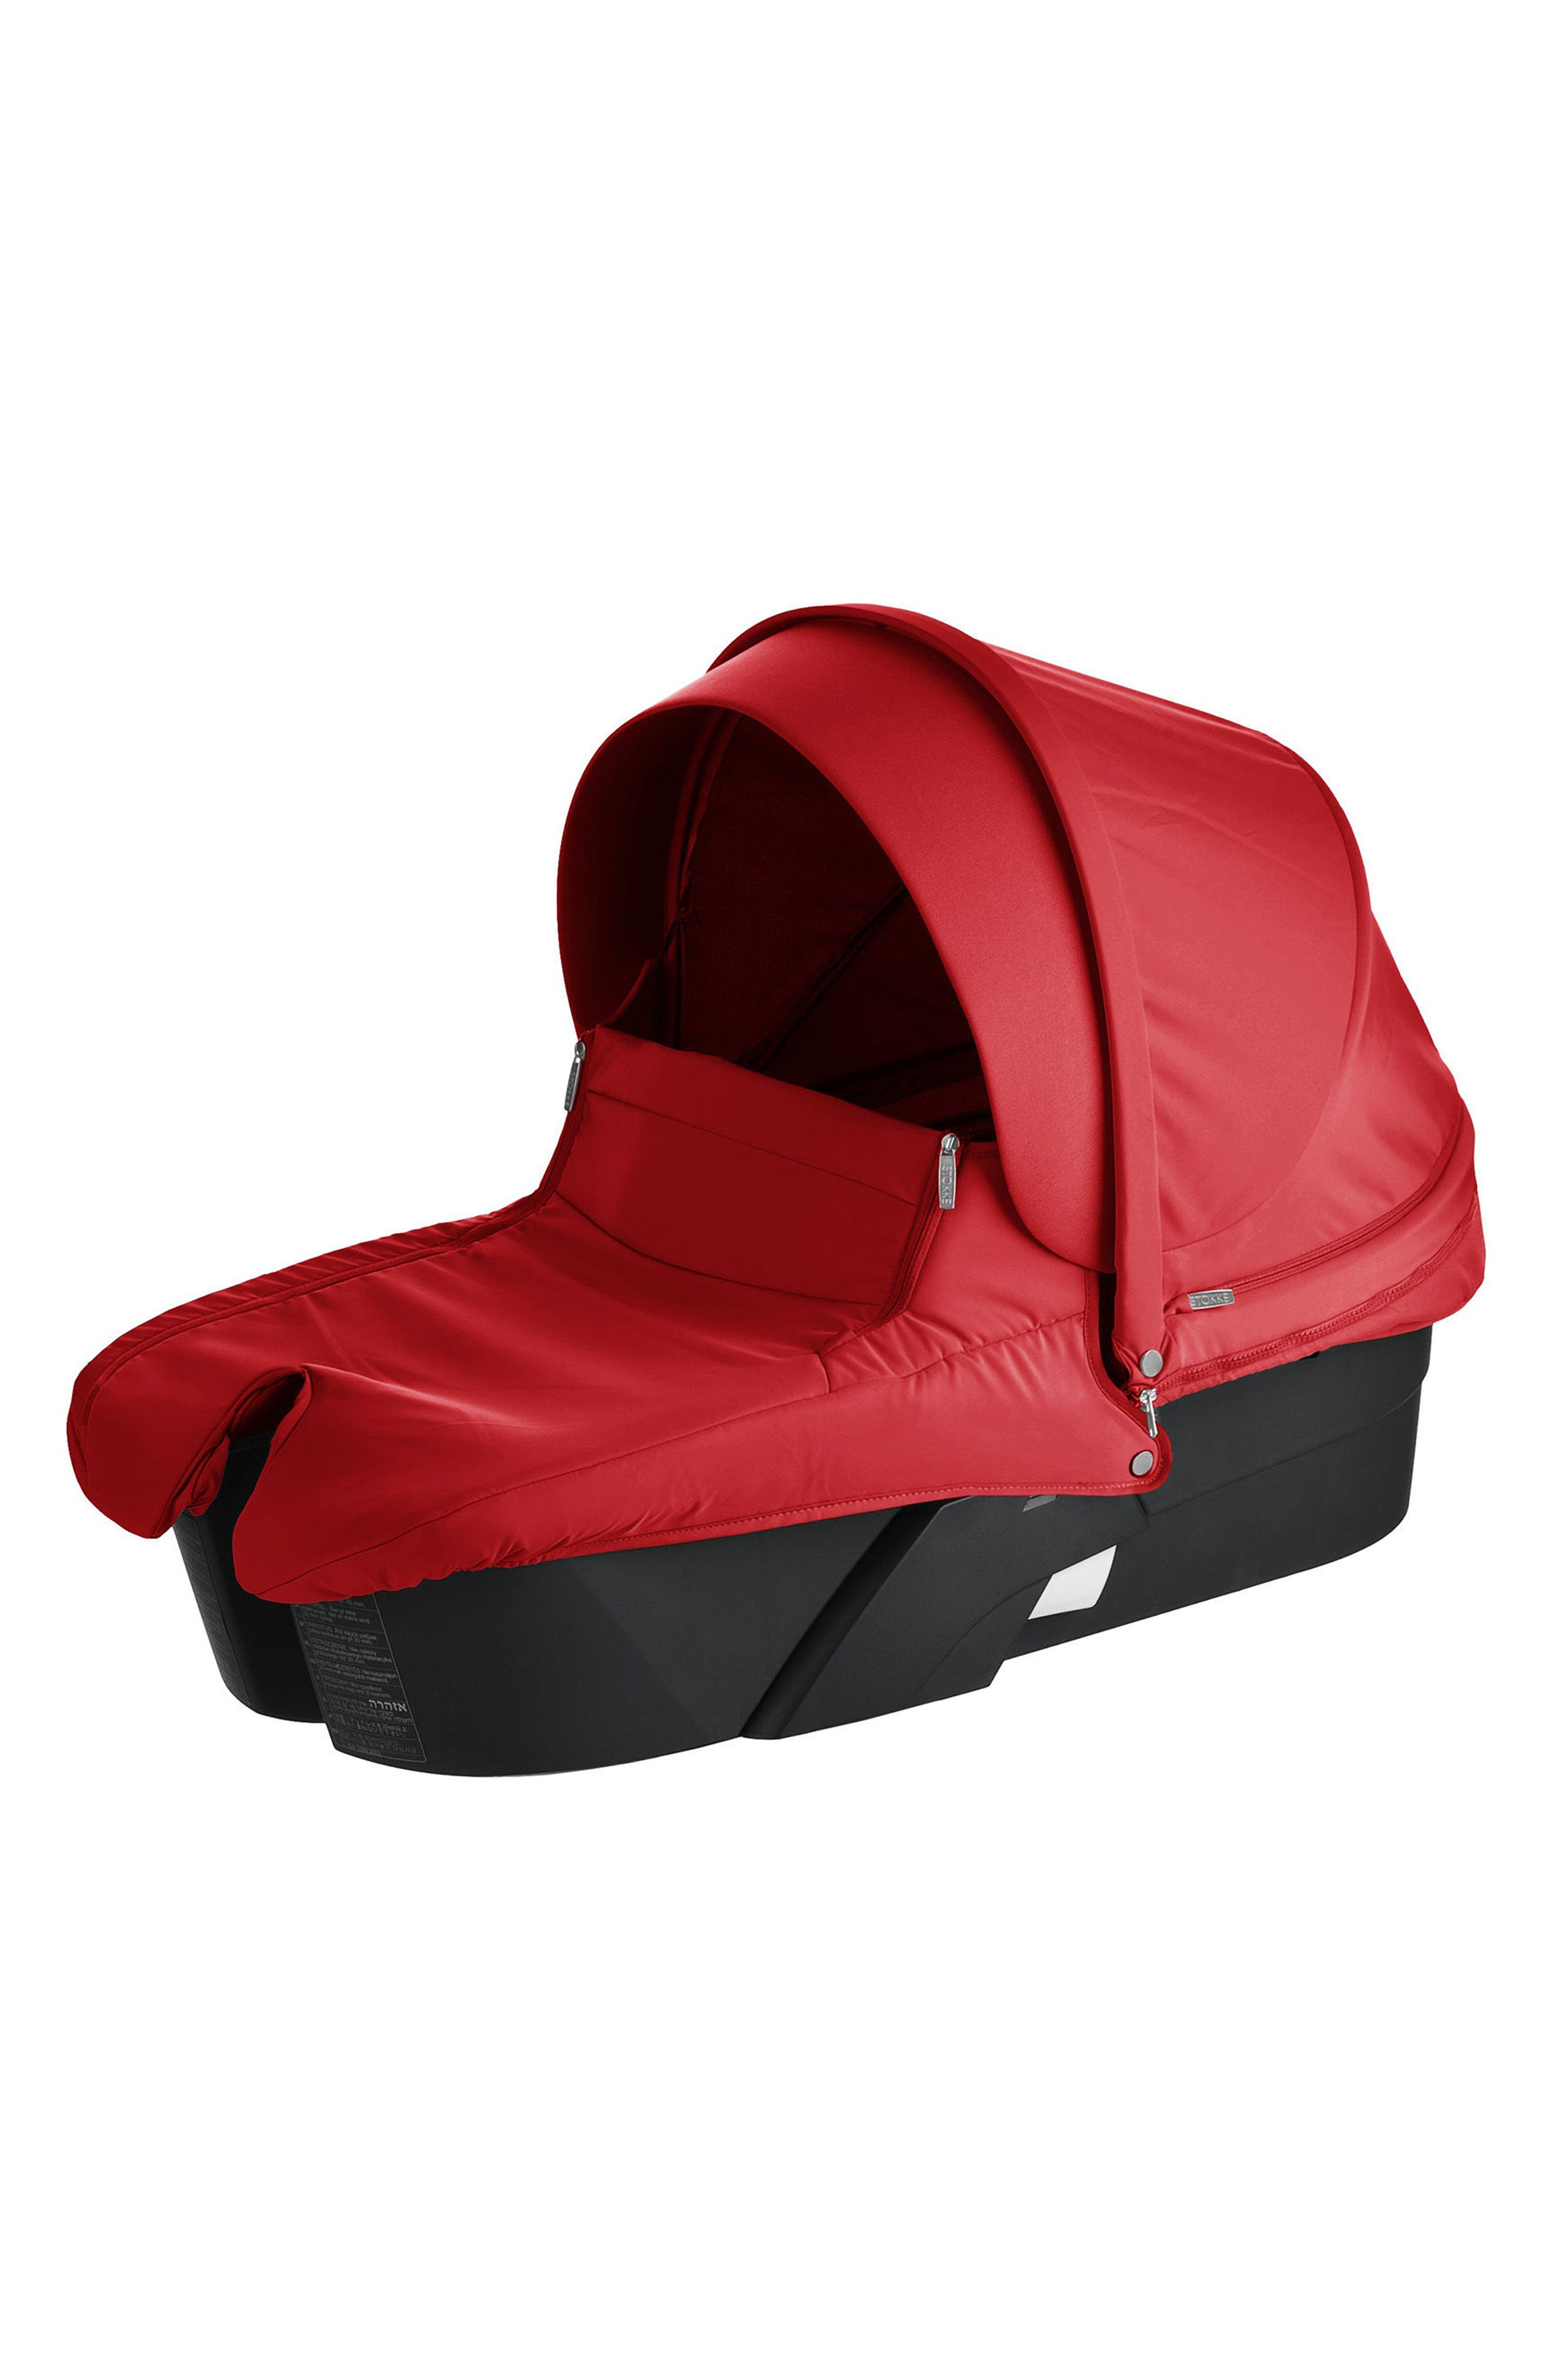 Xplory<sup>®</sup> Black Frame Stroller Carry Cot,                             Main thumbnail 1, color,                             RED